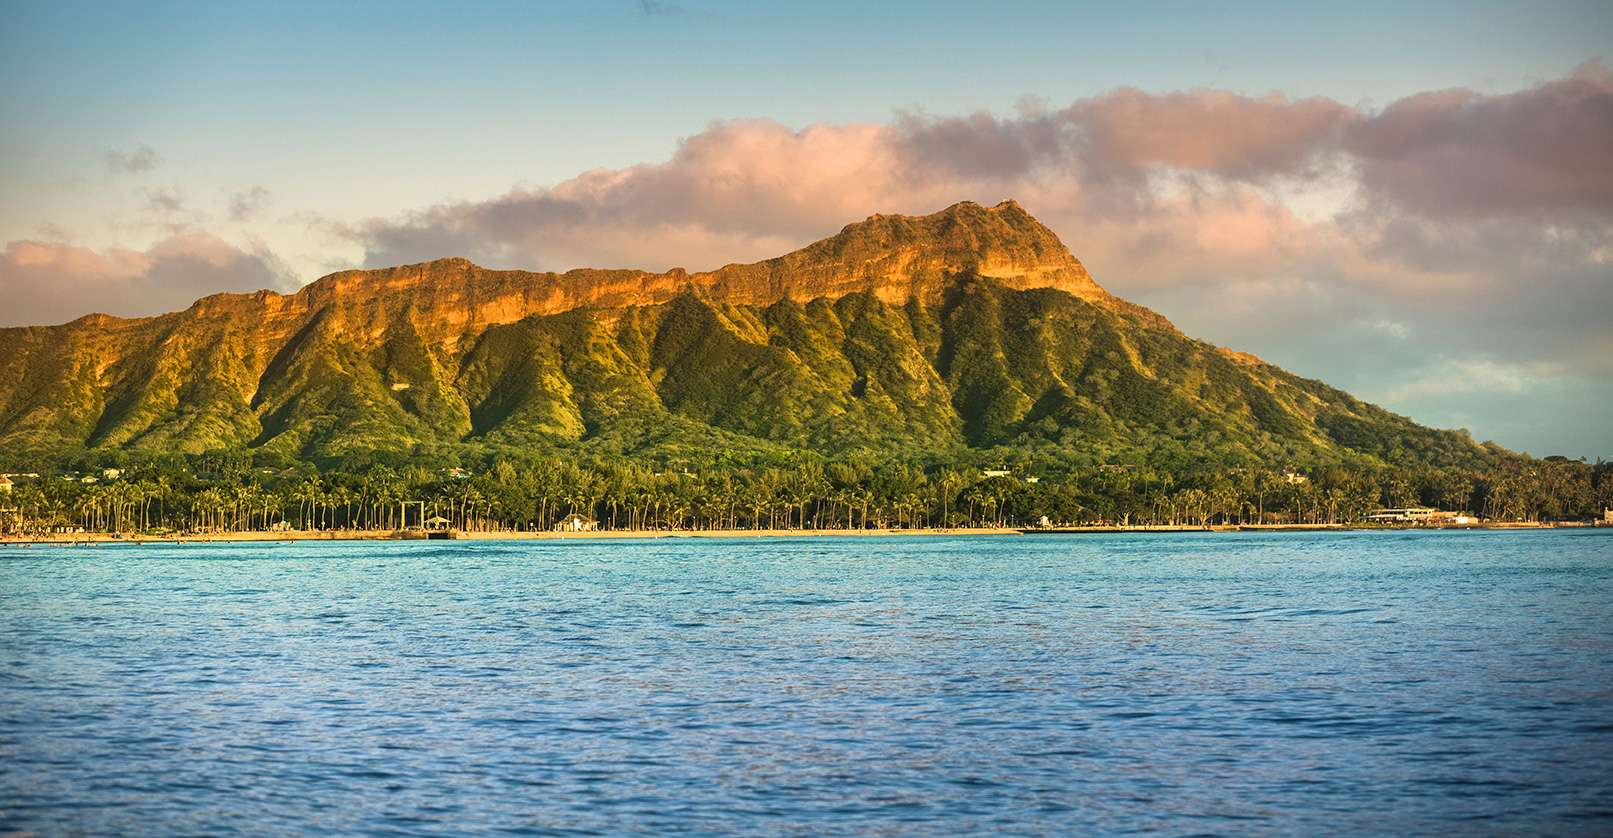 Beautiful Hawaiian Mountain and Sea Scene